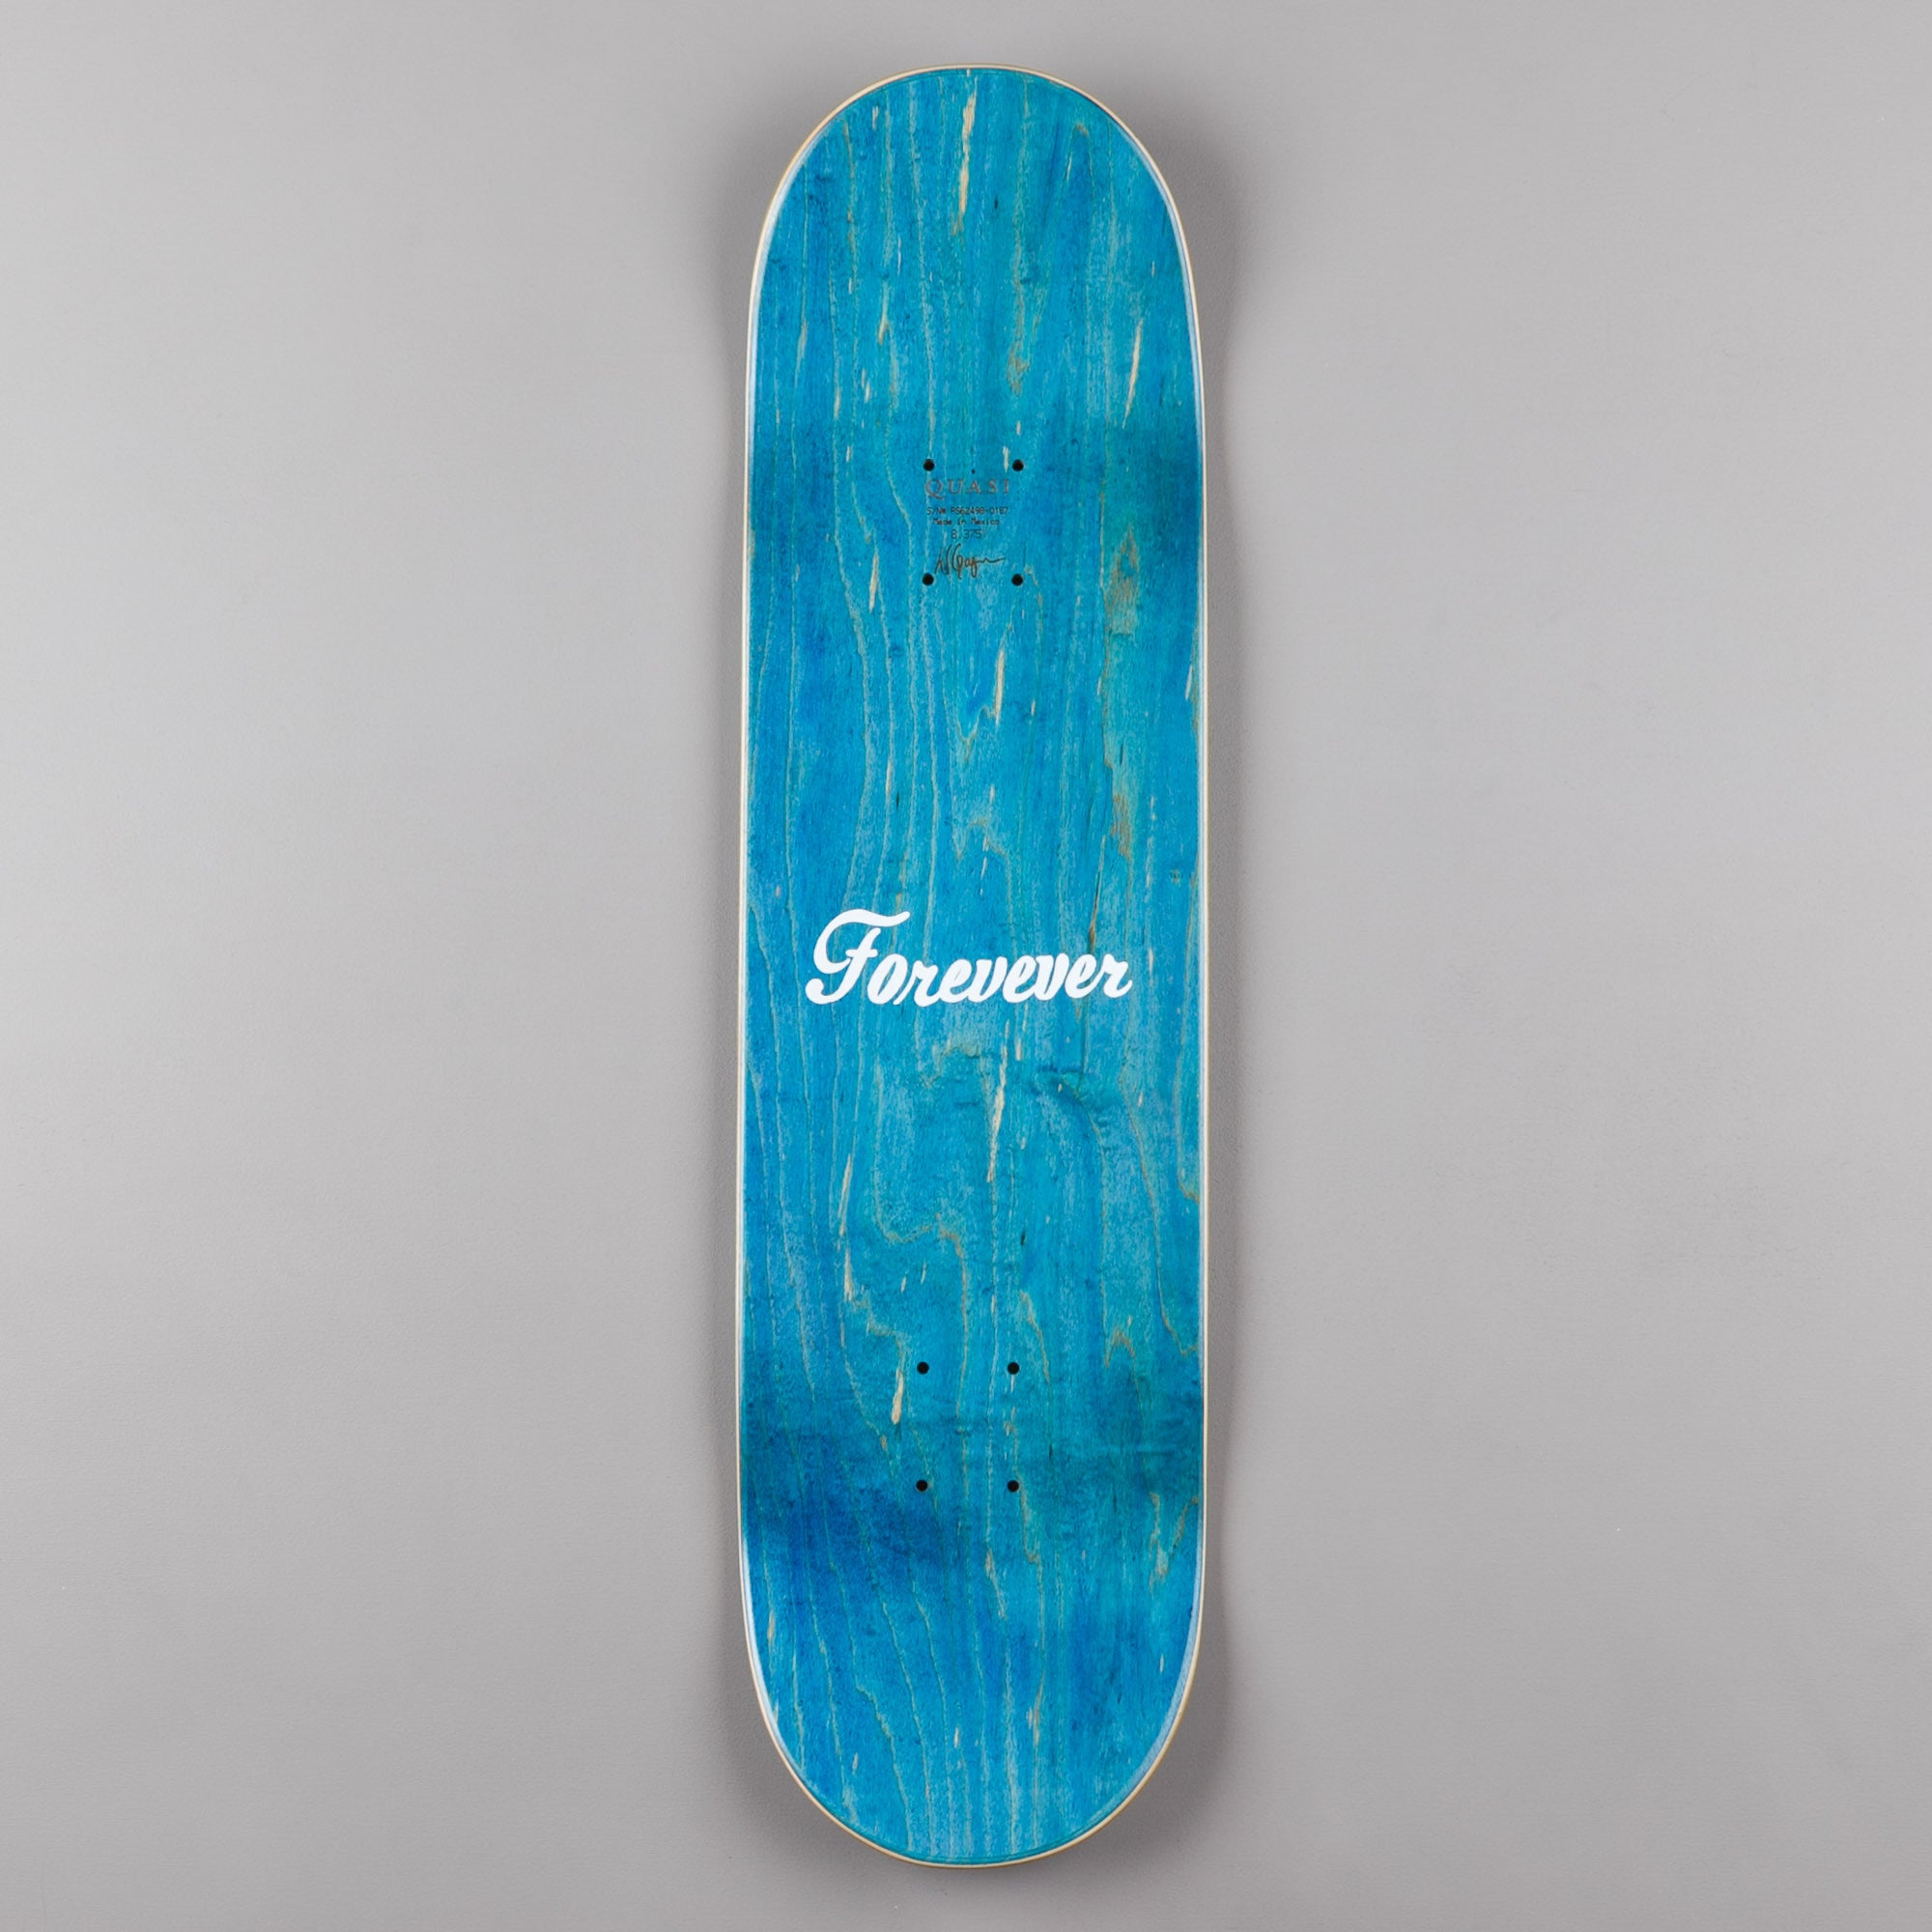 Quasi Skateboards Lewis (One) Deck - Blue - 8.375""